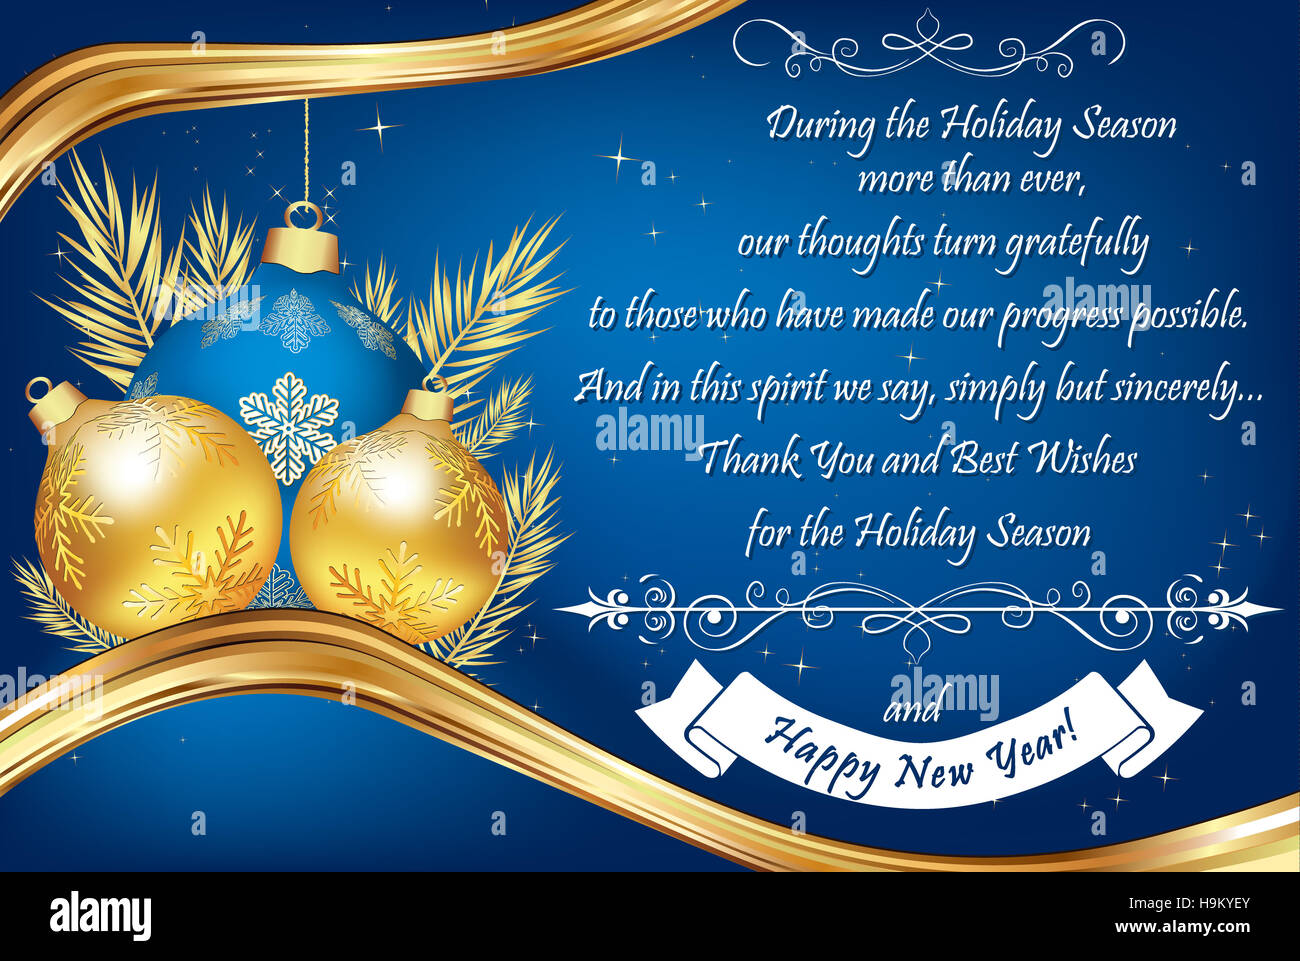 Thank you blue business greeting card for the end of the year thank you blue business greeting card for the end of the year contains a thank you message from company to its staff clients kristyandbryce Choice Image